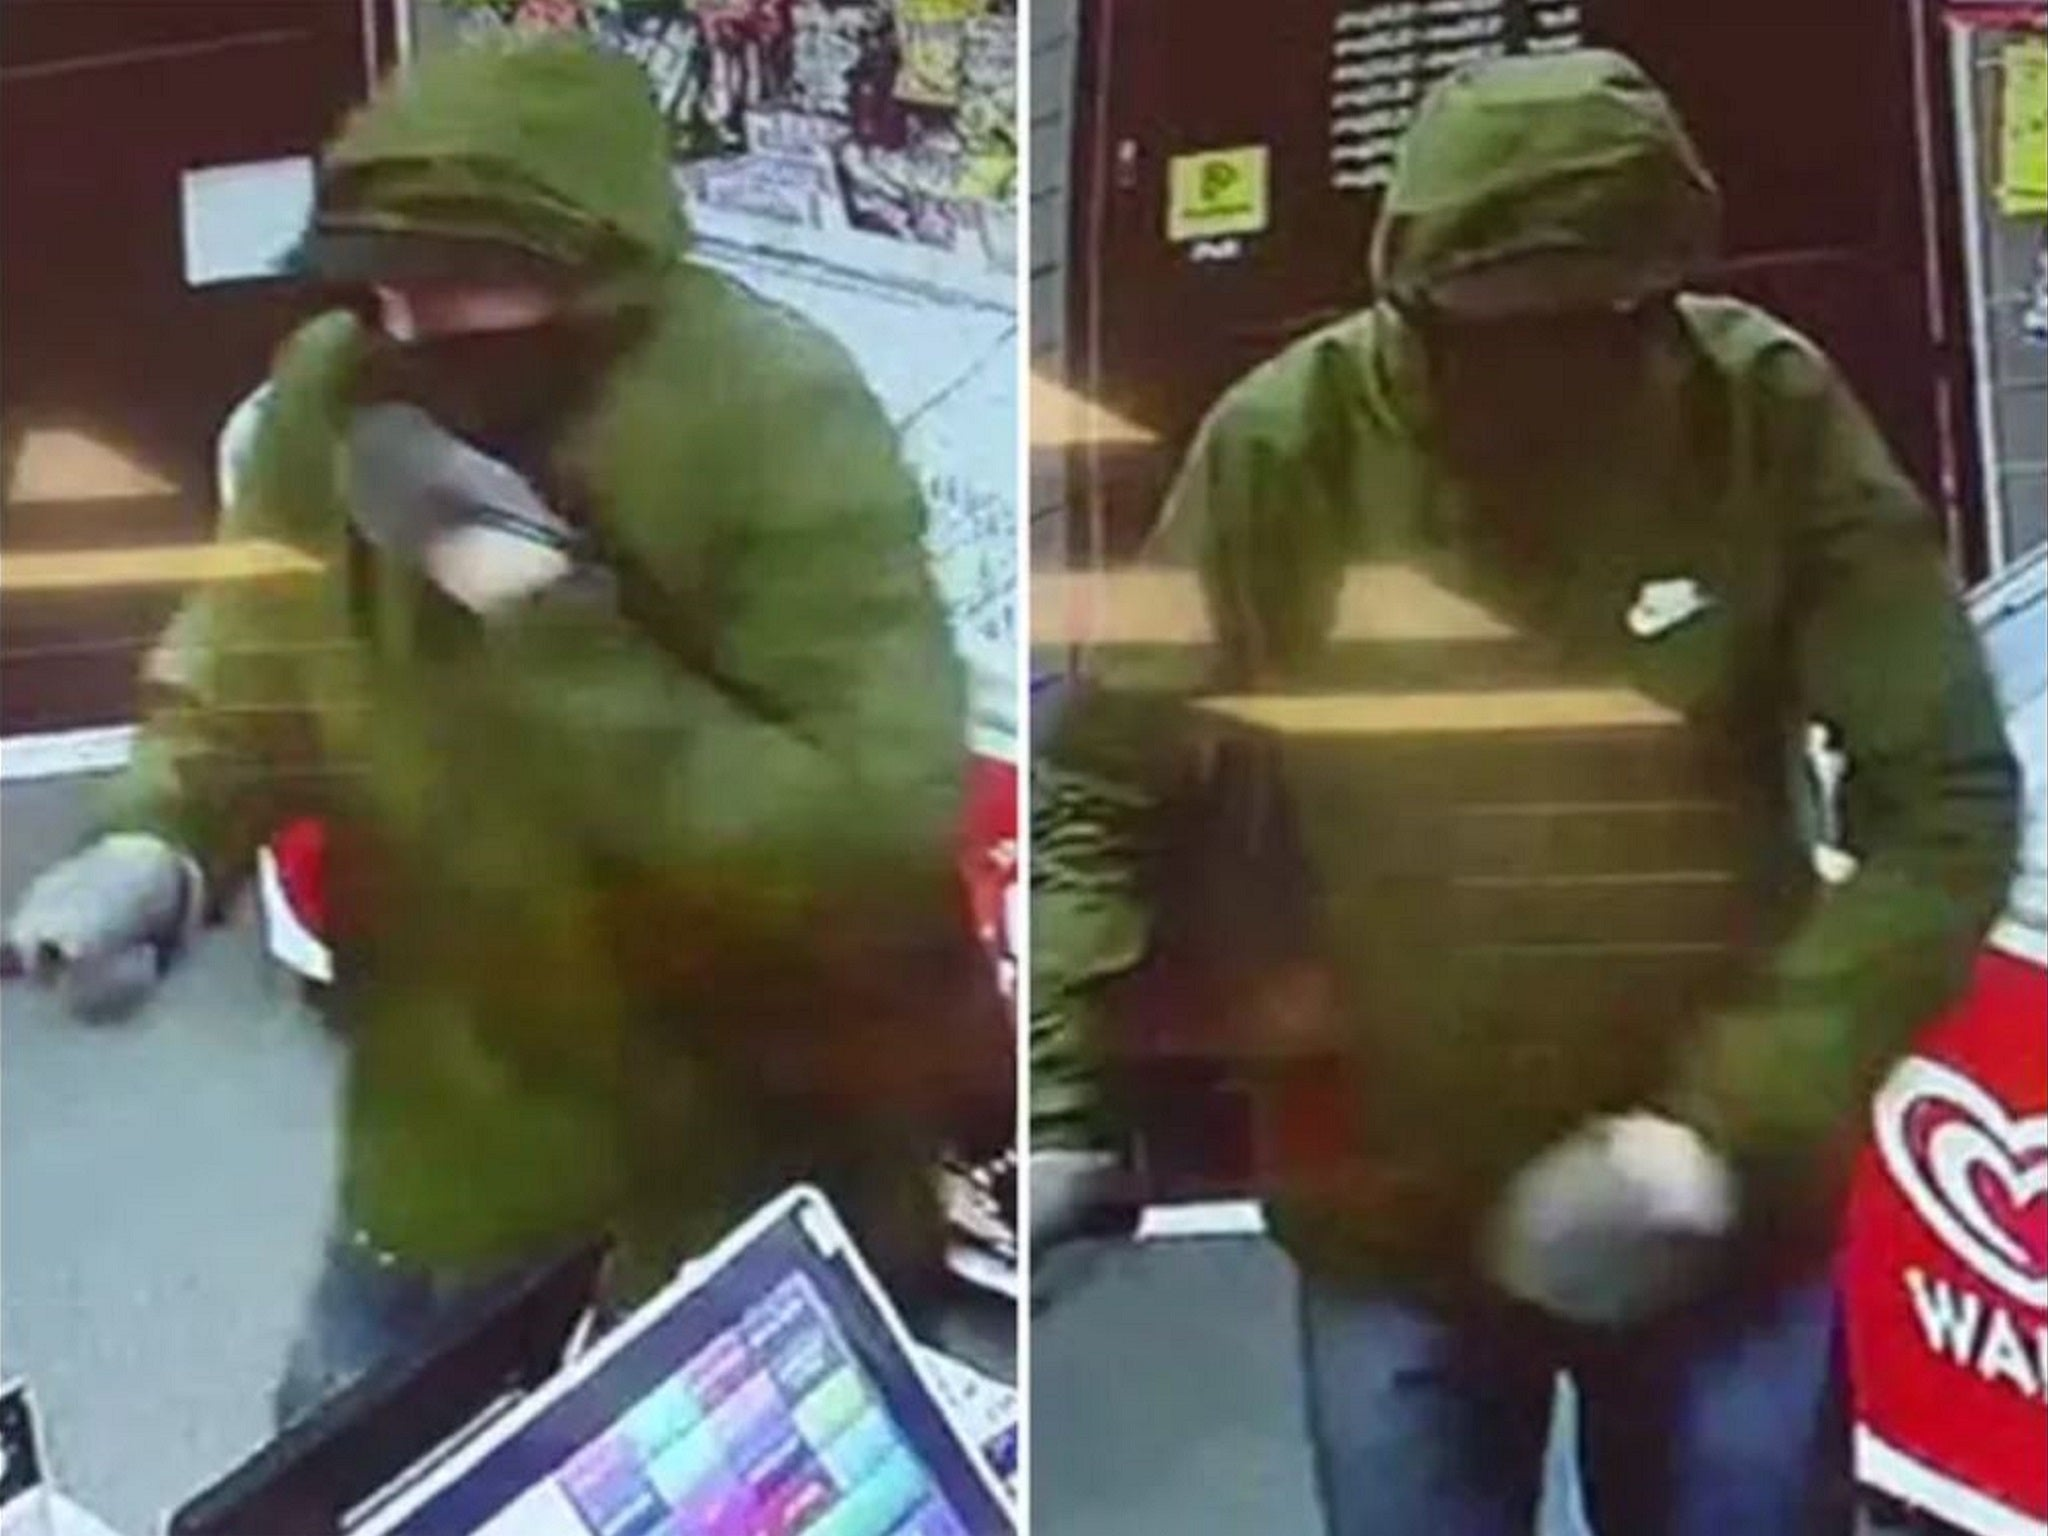 Armed robber scared off by little girl throwing loaf of bread at him